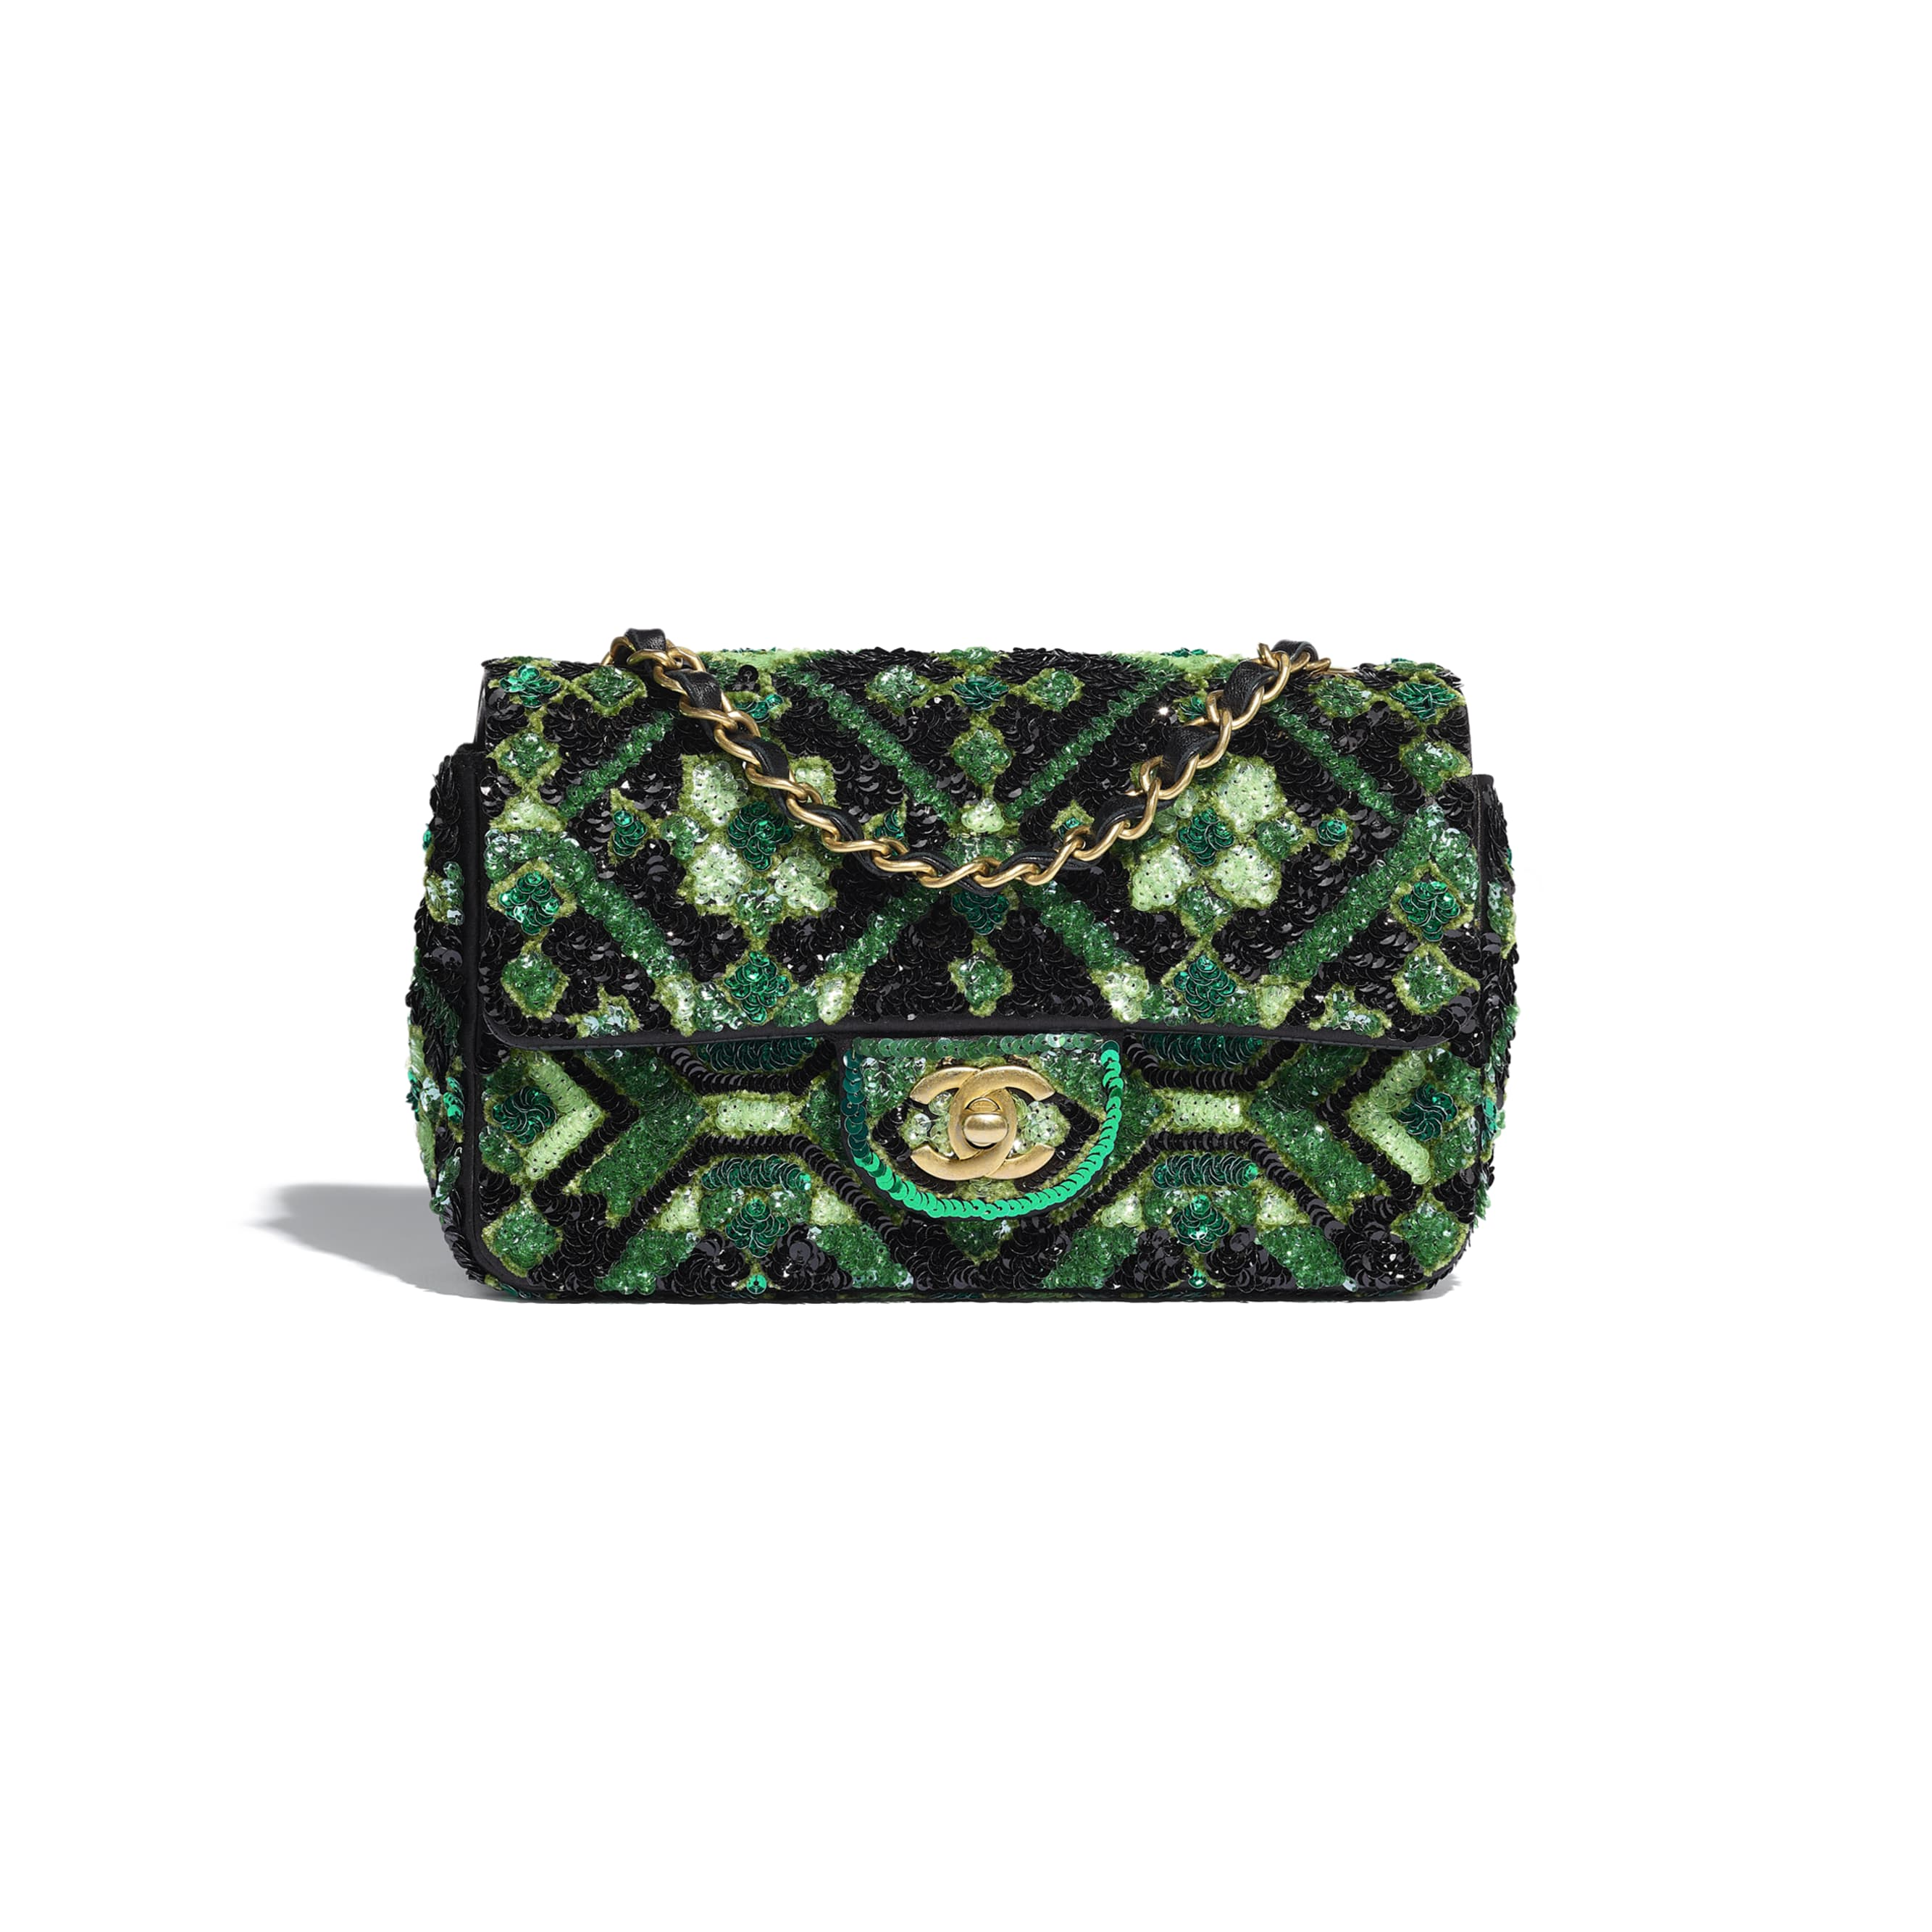 Mini Flap Bag - Green & Black - Sequins & Gold-Tone Metal - CHANEL - Default view - see standard sized version